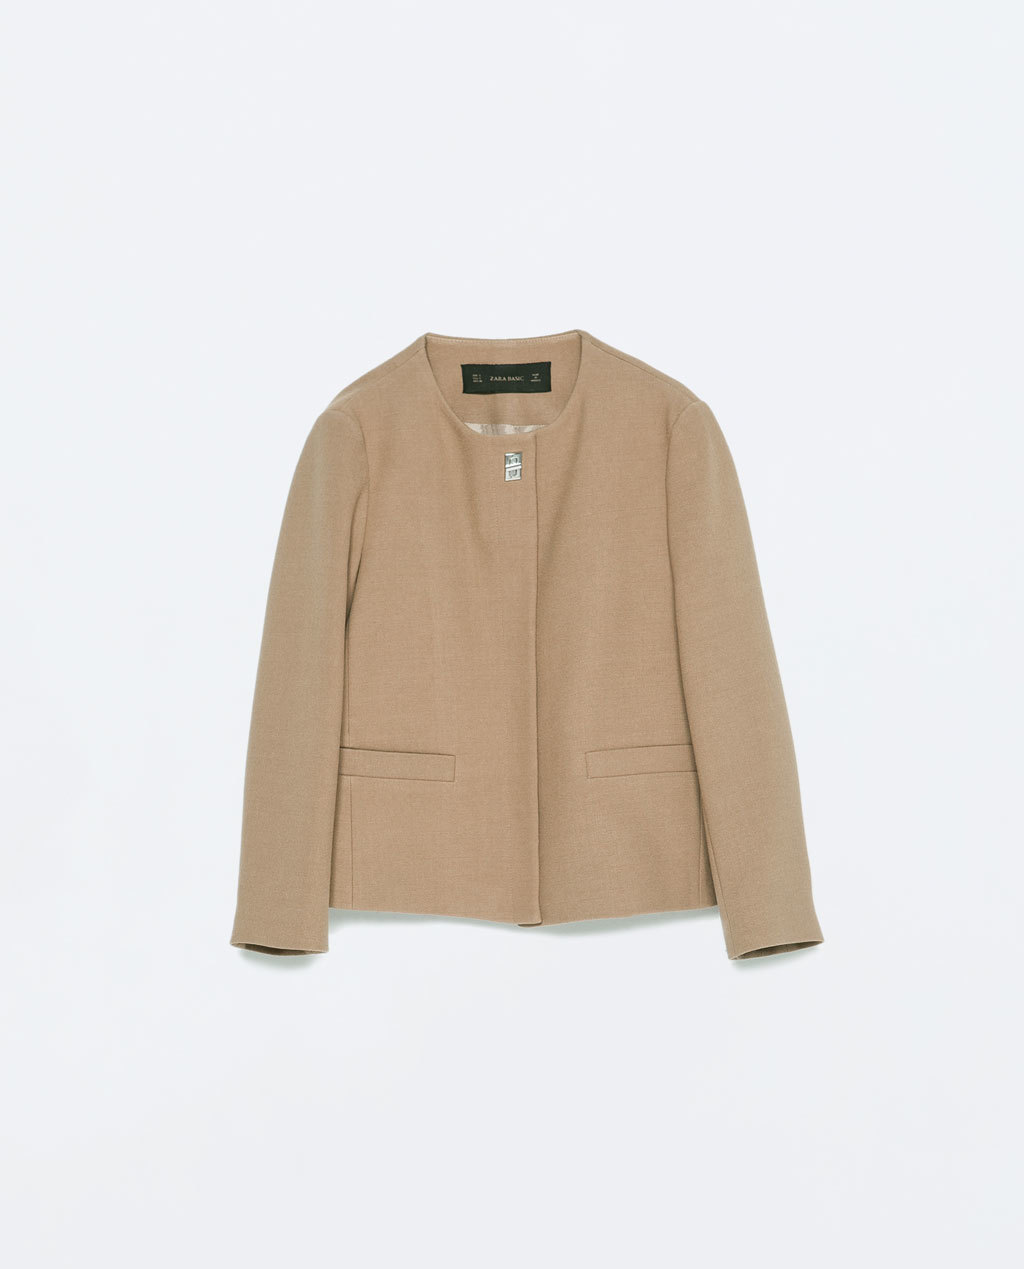 Short Crepe Jacket - pattern: plain; collar: round collar/collarless; style: boxy; predominant colour: camel; occasions: evening, work, creative work; length: standard; fit: straight cut (boxy); fibres: polyester/polyamide - stretch; sleeve length: long sleeve; sleeve style: standard; texture group: crepes; collar break: high; pattern type: fabric; season: s/s 2015; wardrobe: investment